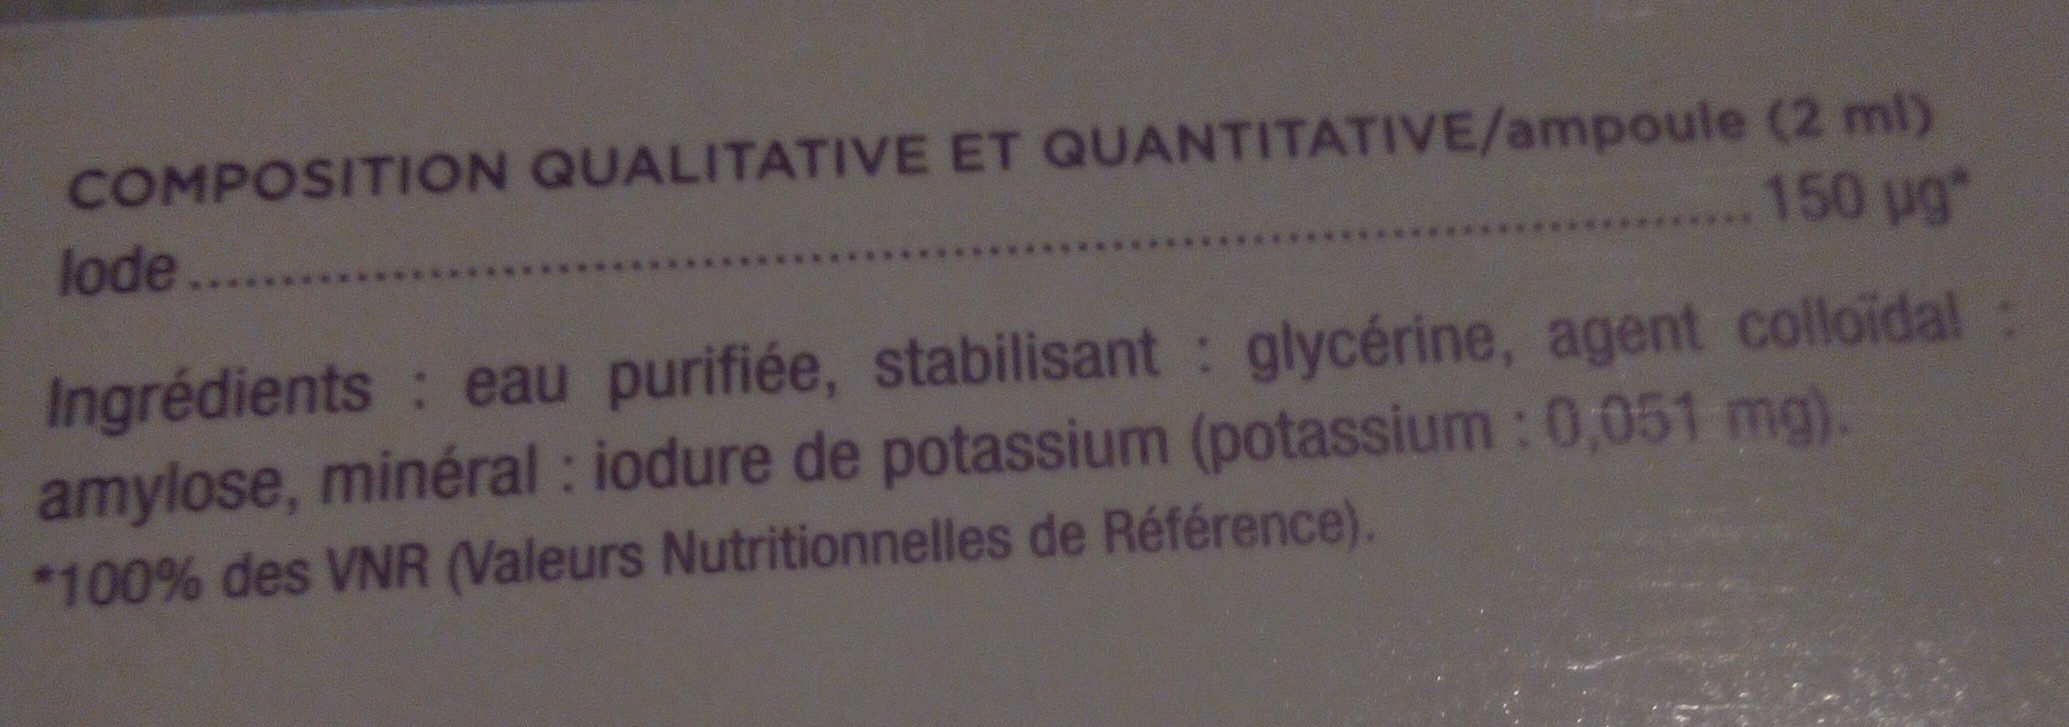 granions d'iode - Ingredients